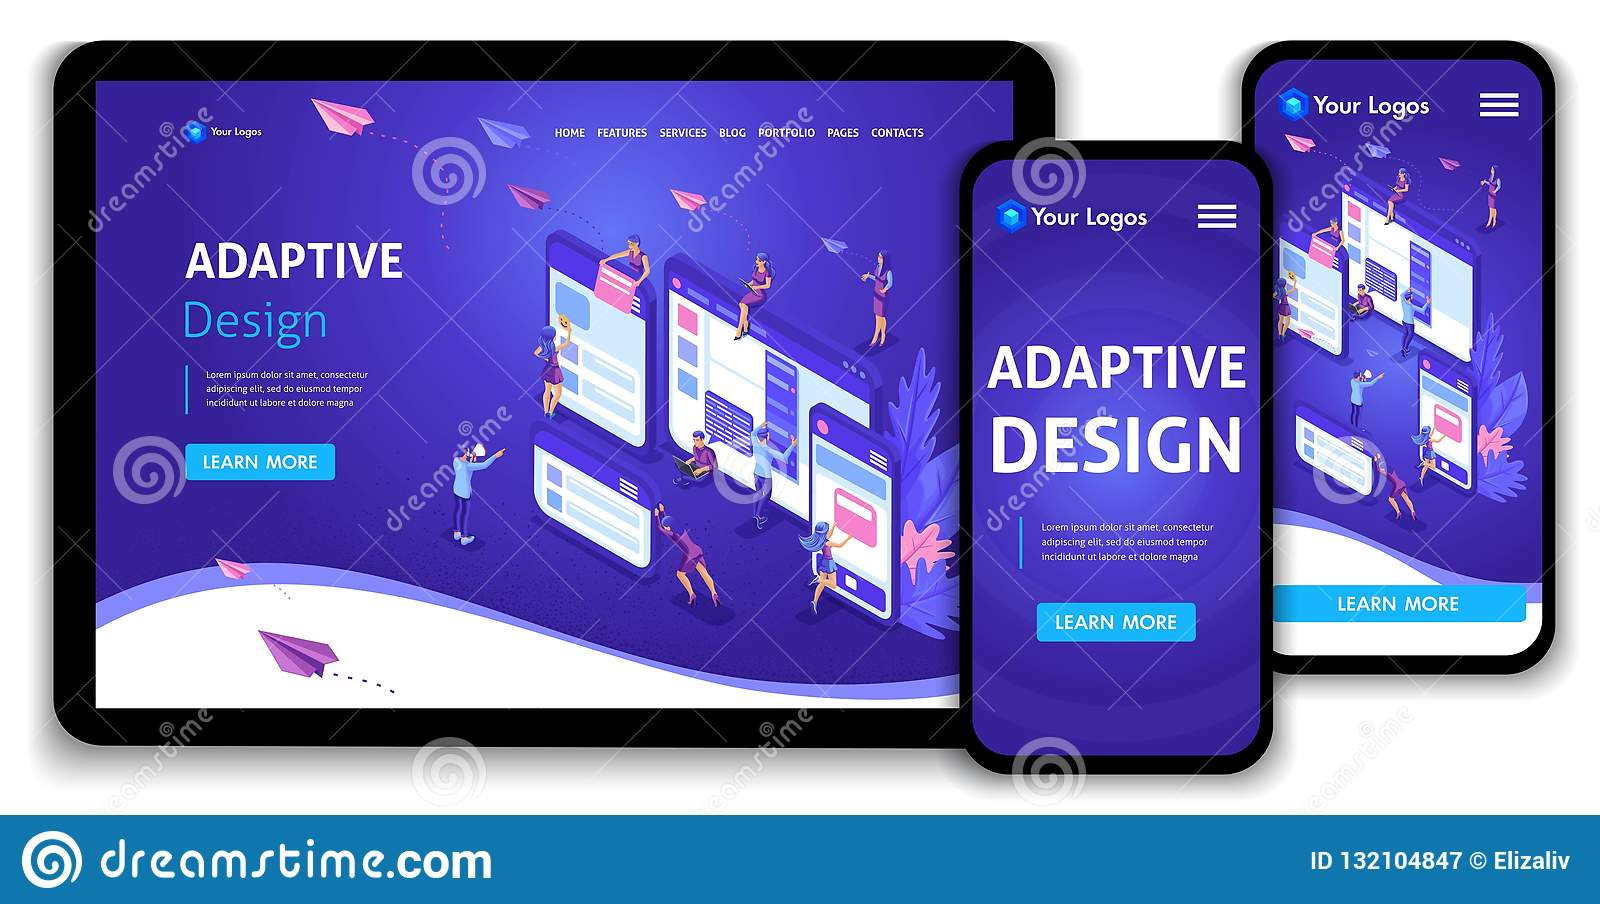 Template Landing page Isometric concept of web page design and development of mobile websites, adaptive design, applications